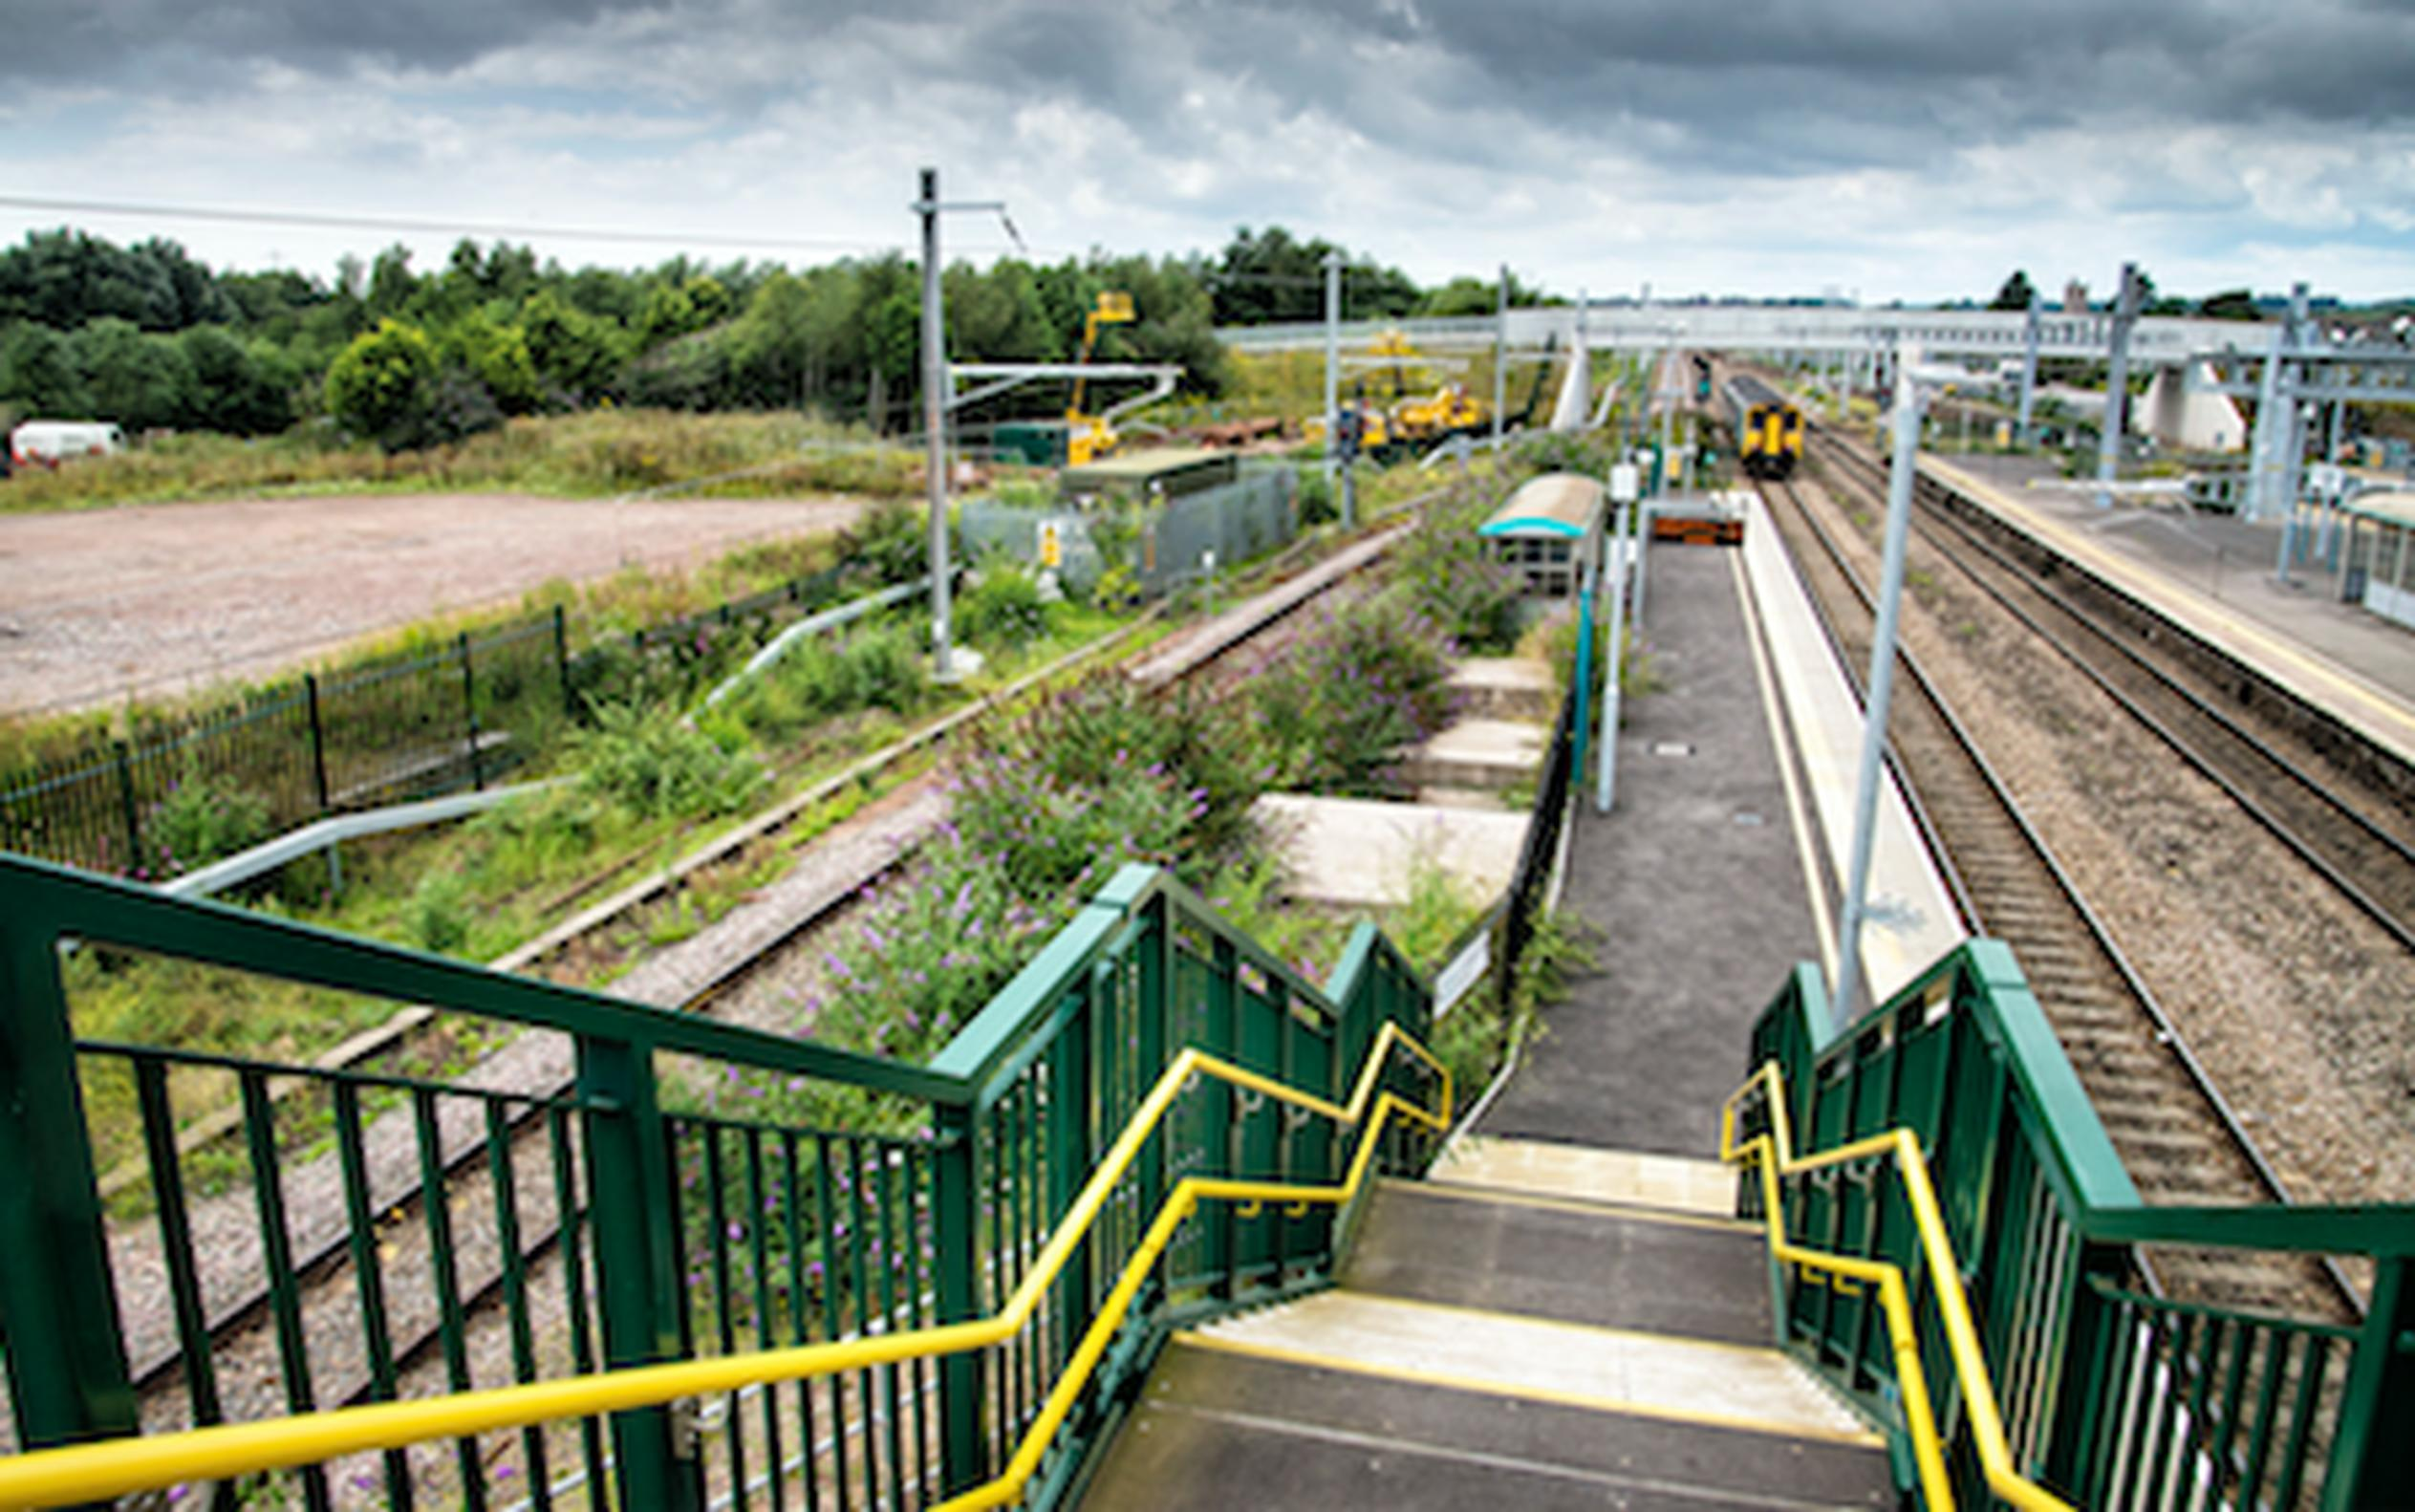 Severn Tunnel Junction car park could grow